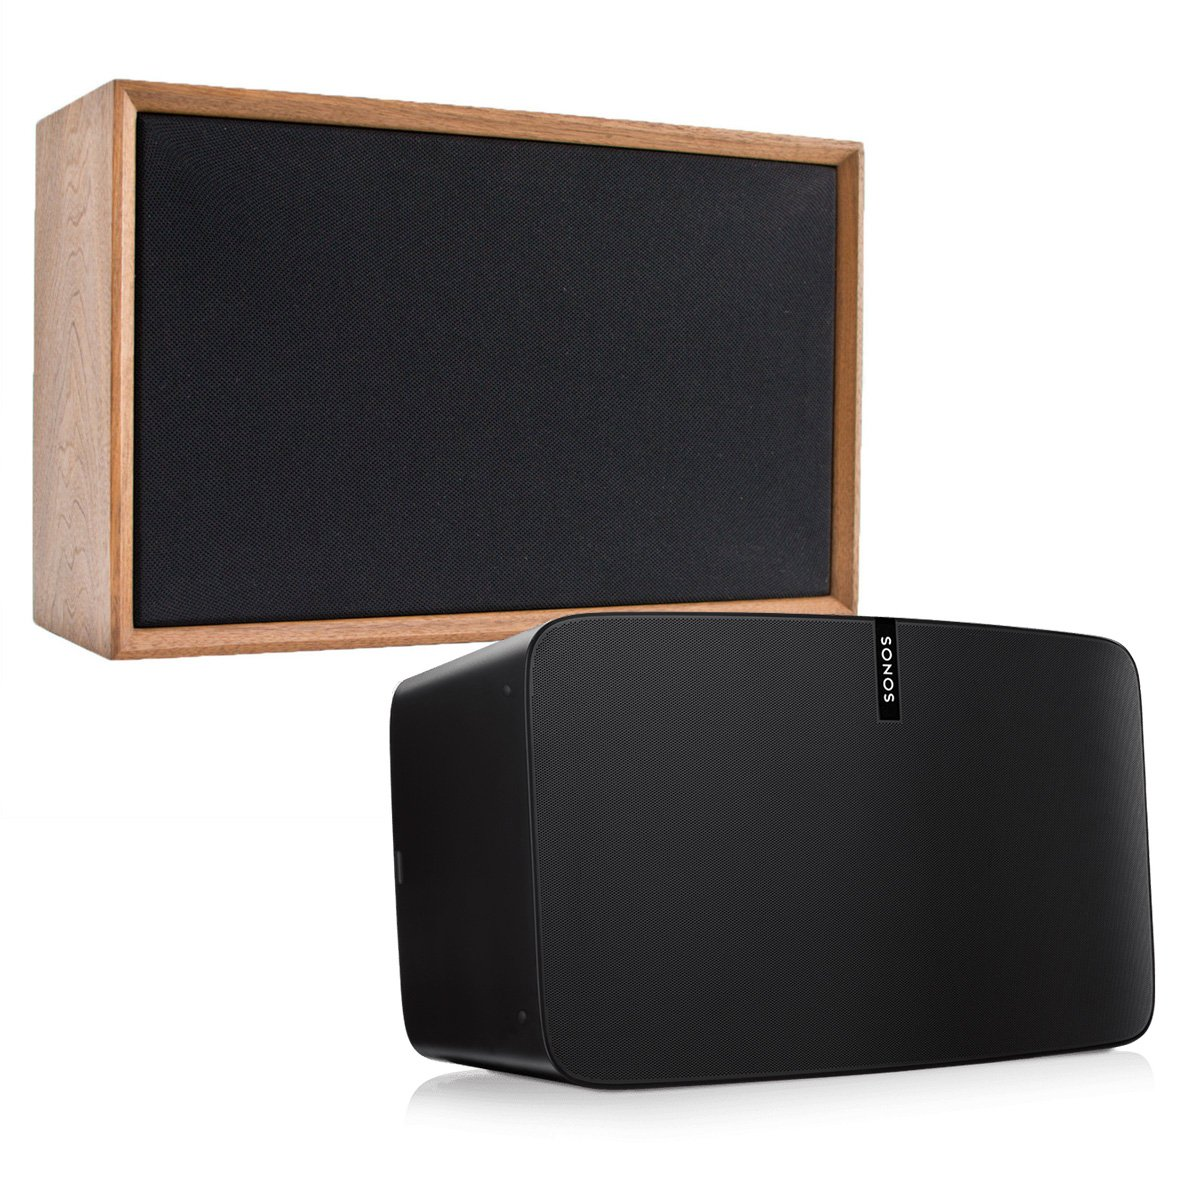 Sonos PLAY:5 - Ultimate Wireless Smart Speaker for Streaming Music with Leon ToneCase Hardwood Cabinet (Black Walnut)